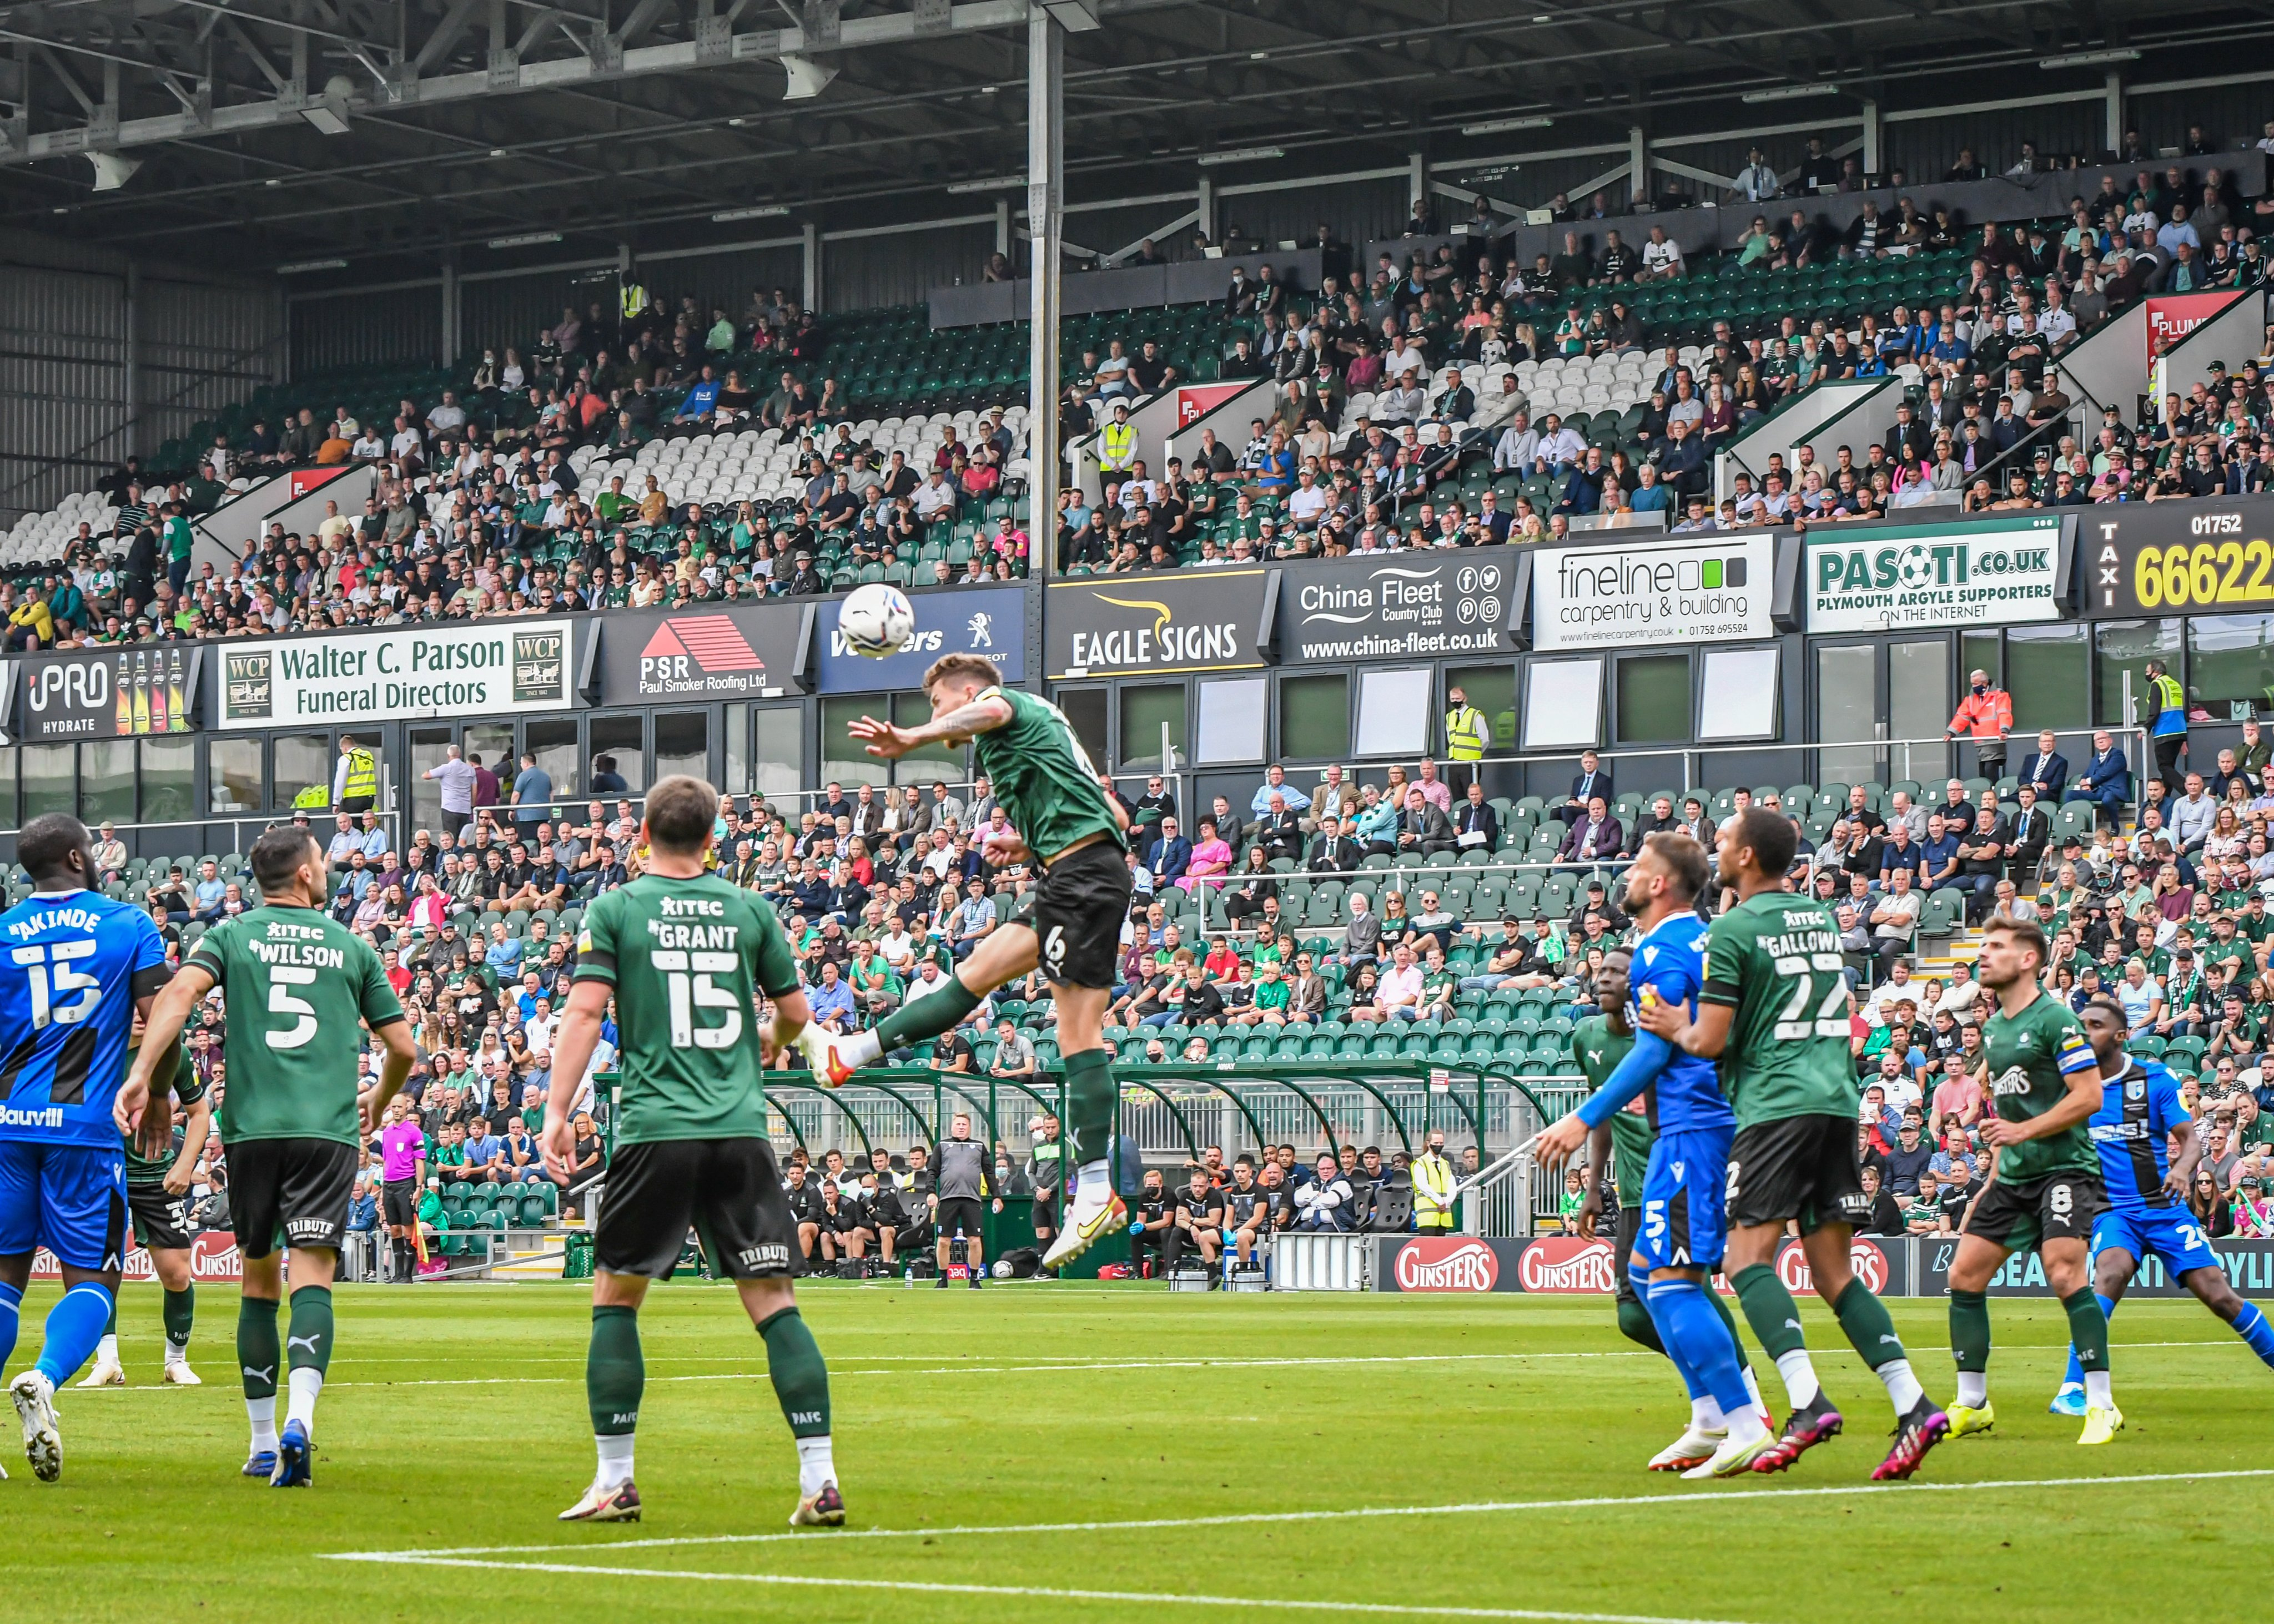 Argyle clear in victory over Gillingham